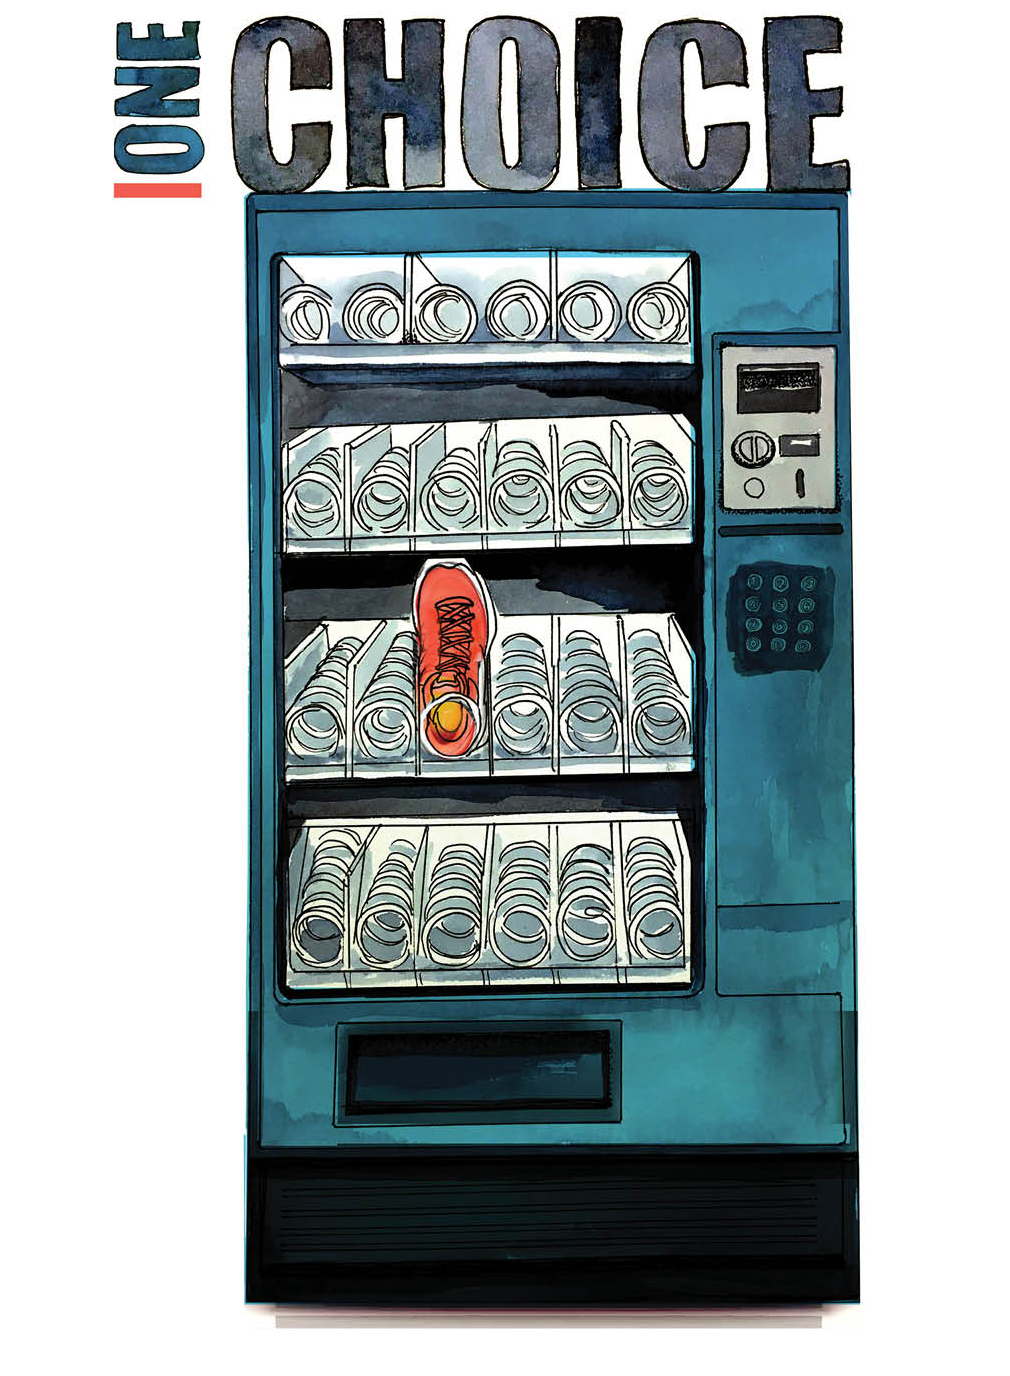 One Choice. Commit. Illustration of a vending machine with an athletic shoe as the only choice.